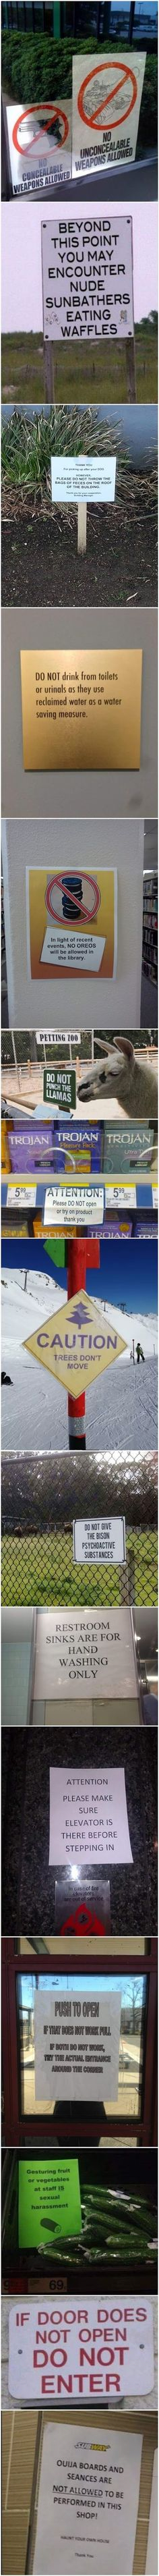 Funny Signs With Stories Funny Fails, Funny Jokes, Funny Pranks, Funny Cartoons, Haha Funny, Funny Things, Funny Stuff, Funny People, Funny Questions